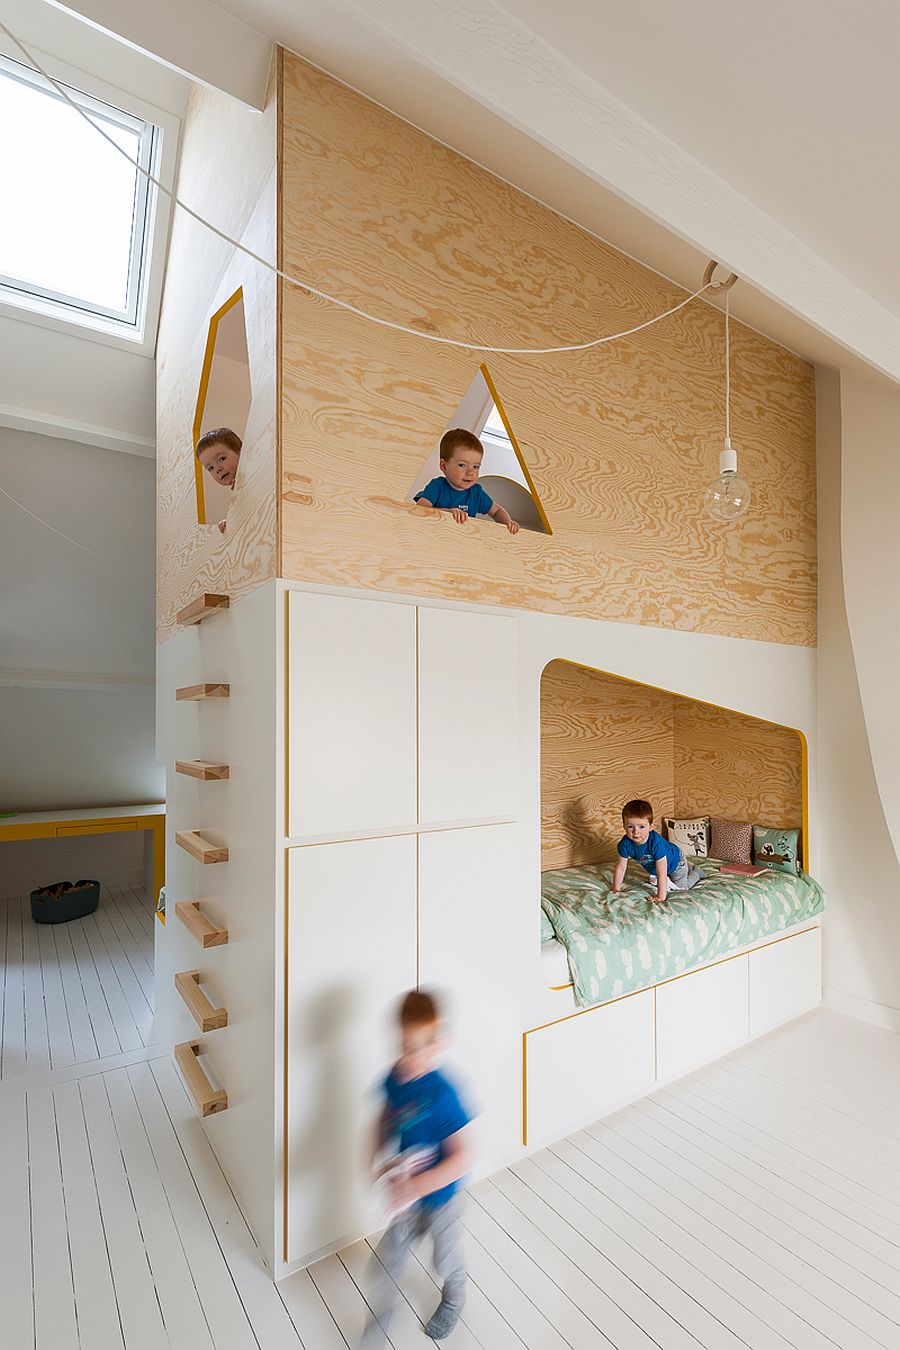 Bespoke Brilliance: Twin Bed Wall in Kids? Room with Loft Play Zone